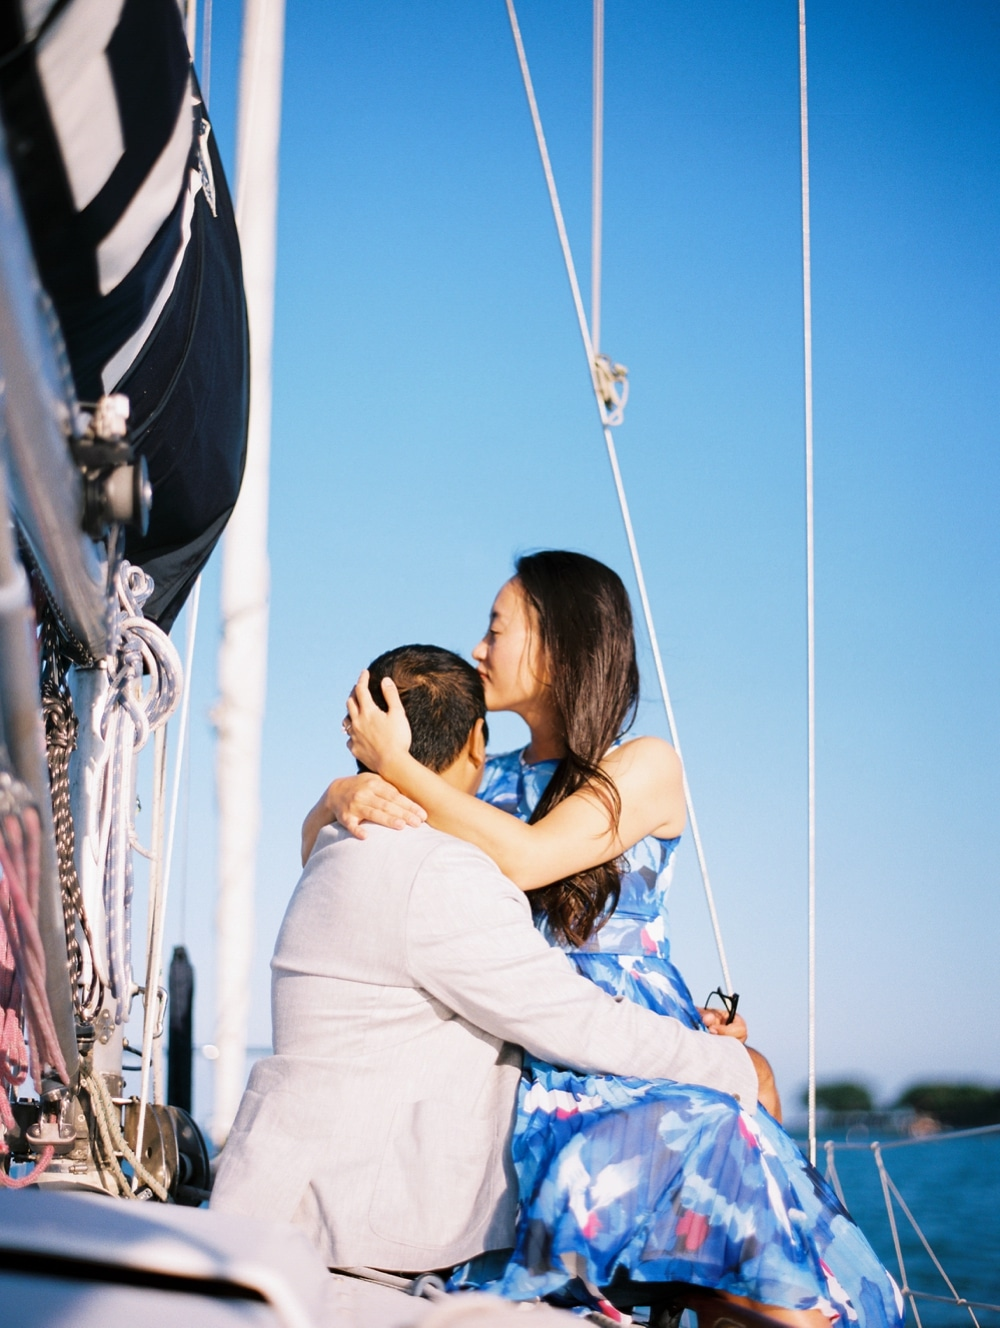 kristin-la-voie-photography-Chicago-wedding-photographer-lake-michigan-sailing-69